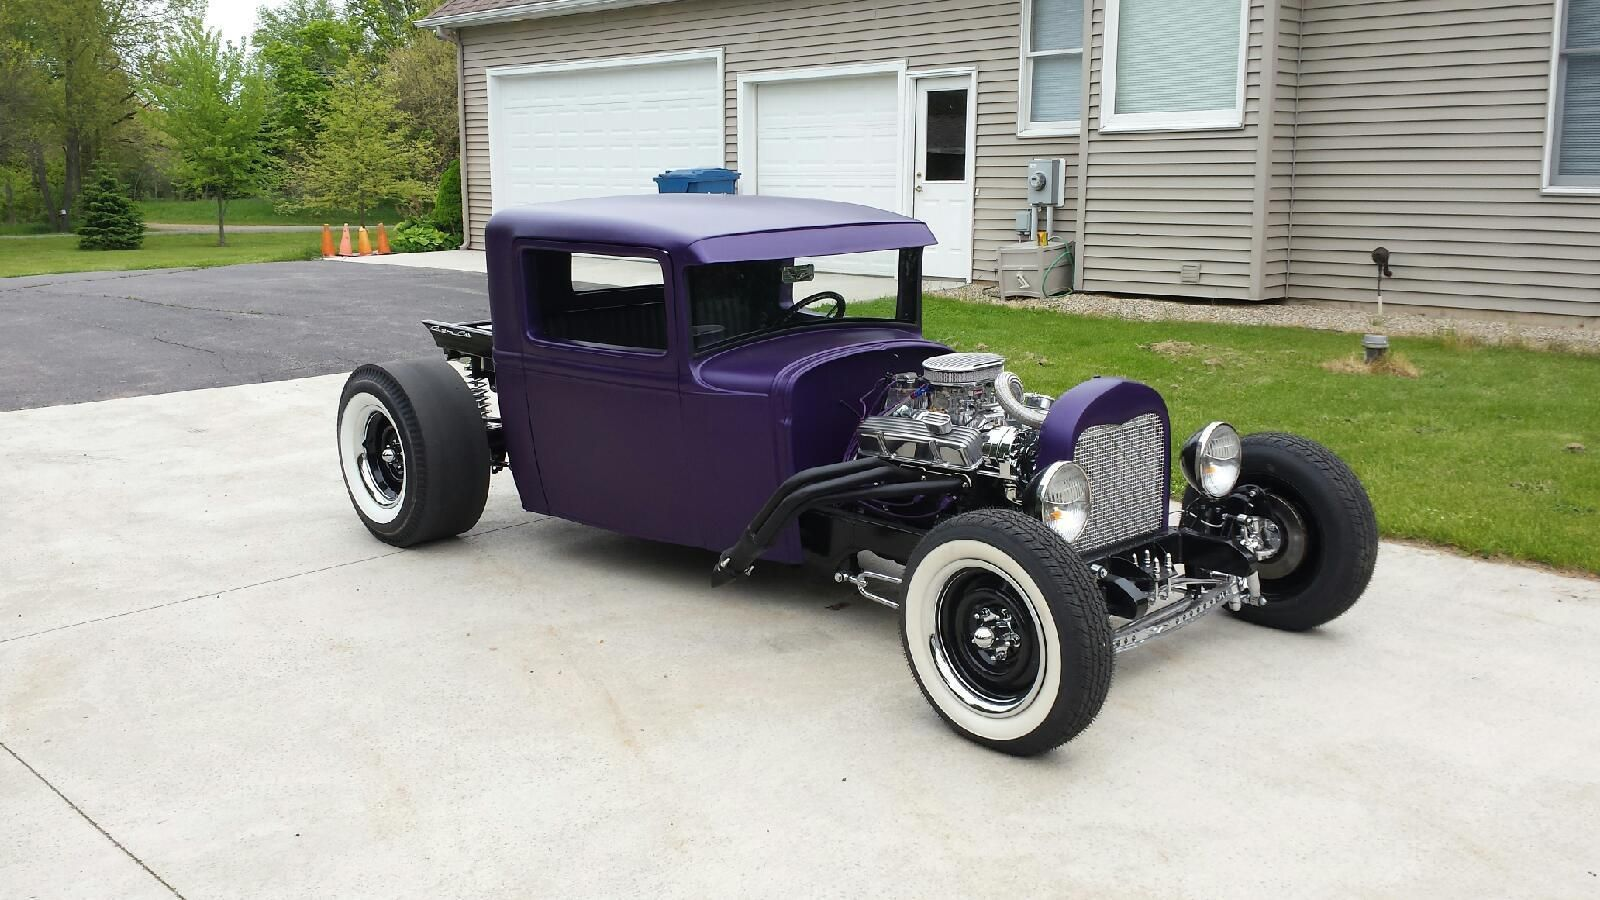 1931 Ford Model A Rat Rod Pro Street | Hot rods for sale | Pinterest ...